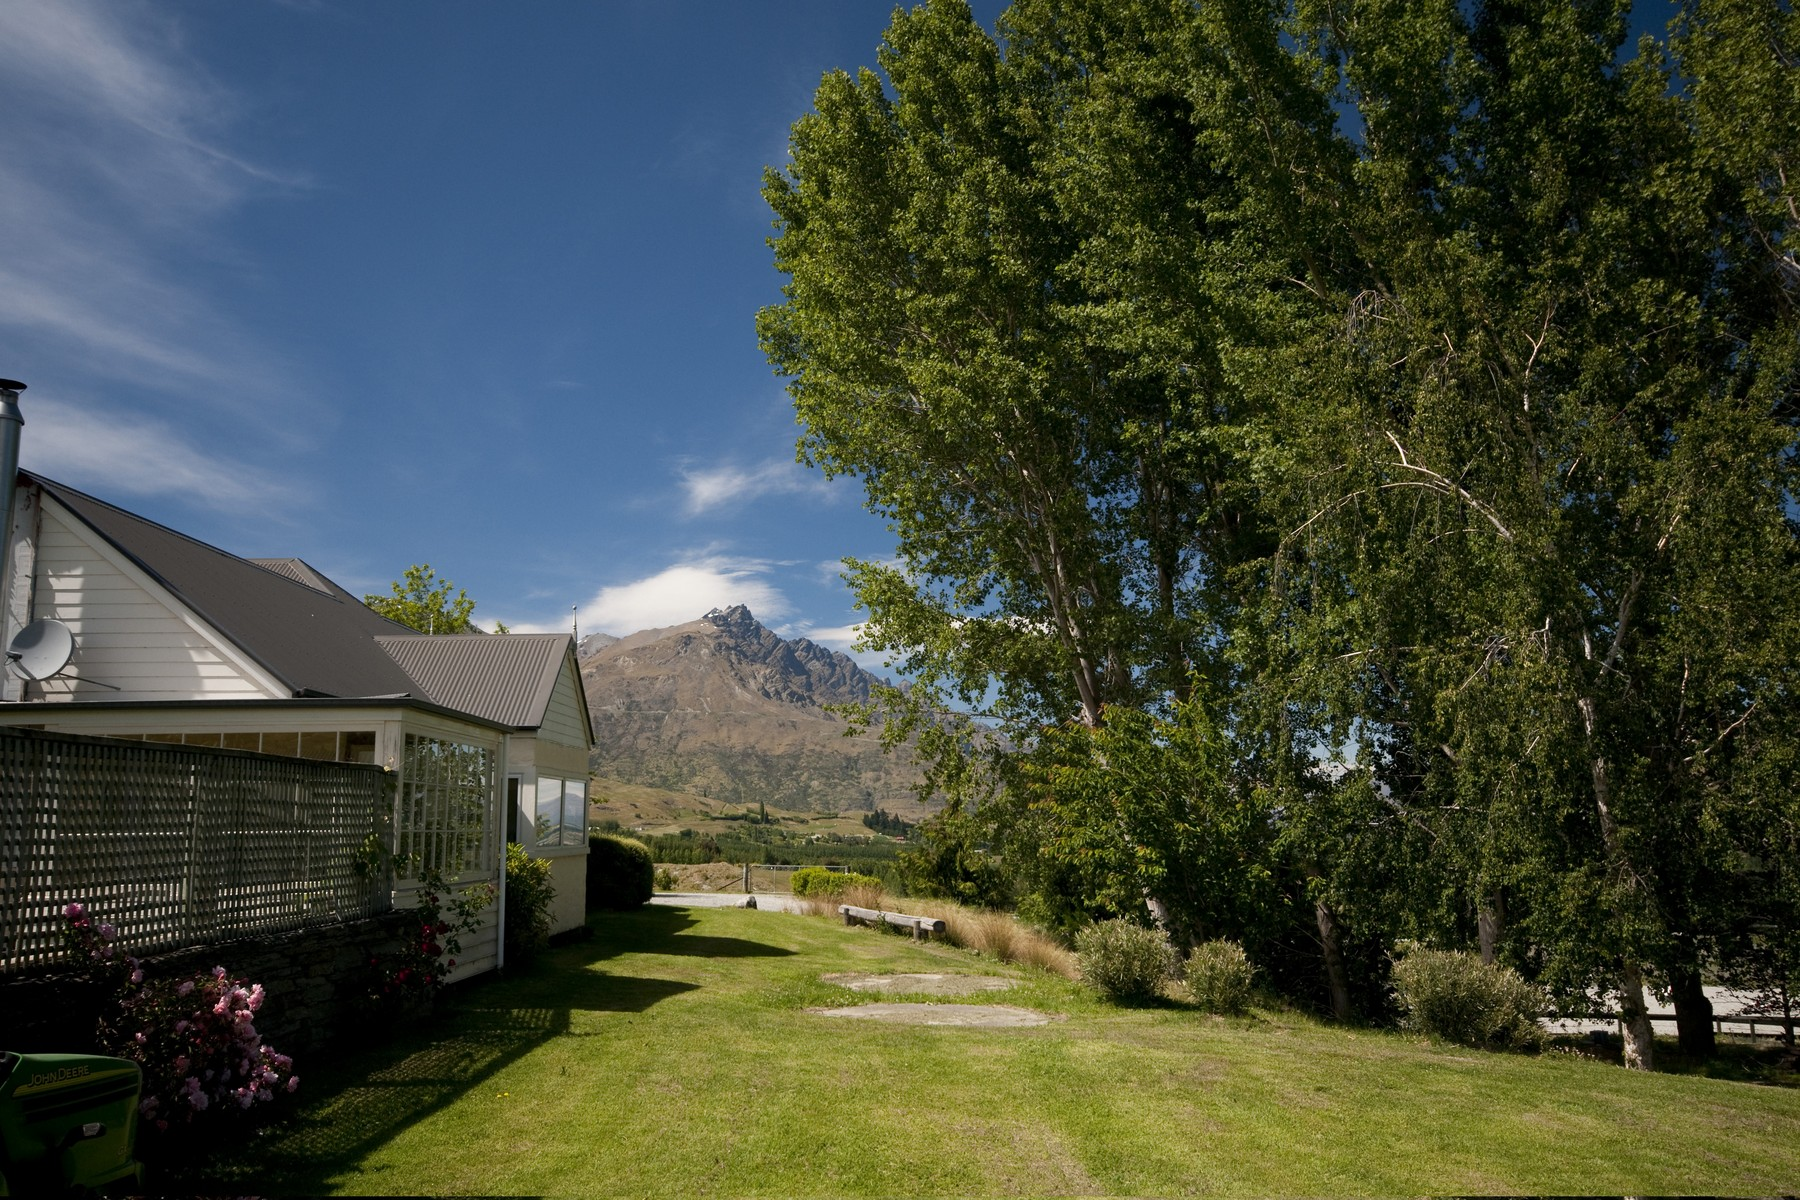 独户住宅 为 销售 在 Speargrass Farm, 125 Hunter Road 125 Hunter Road Speargrass Flat Queenstown, 南部湖区 9371 新西兰